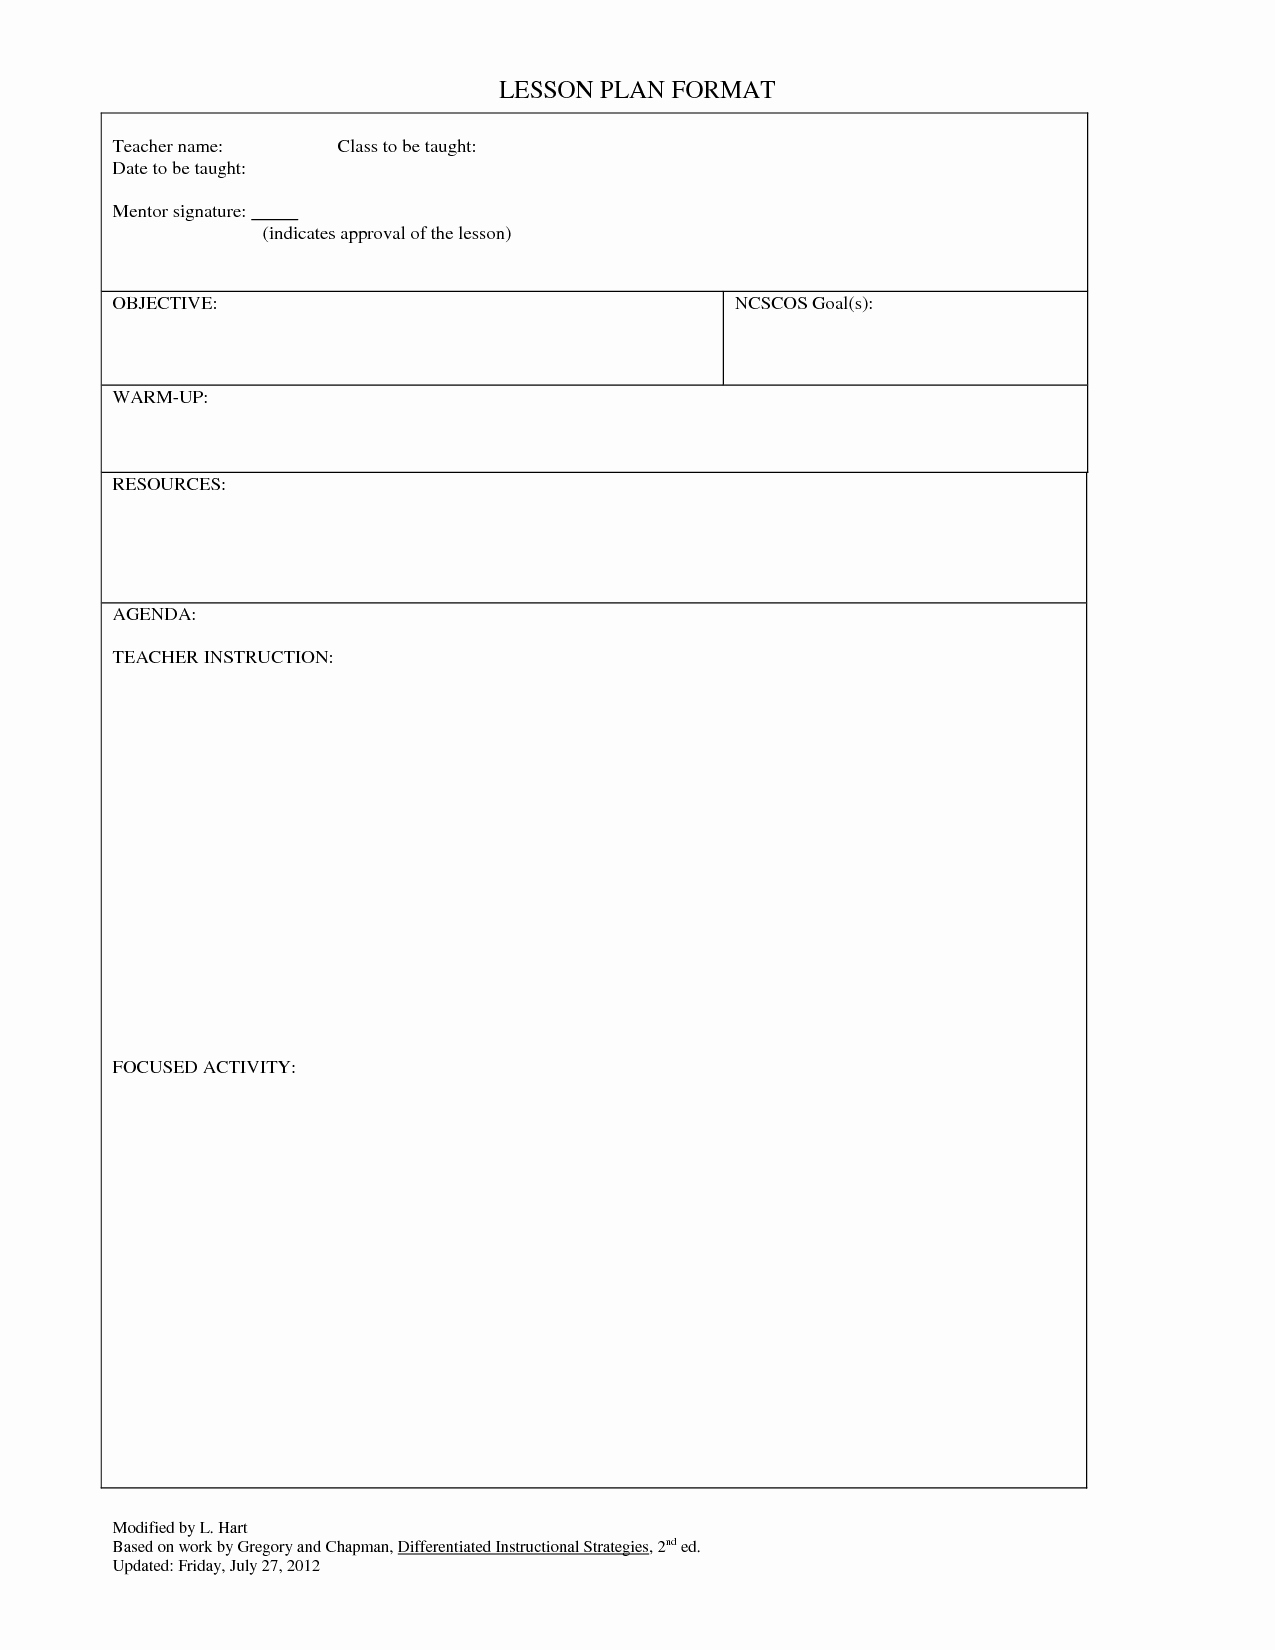 Editable Lesson Plan Template Beautiful Blank Lesson Plan Template Lesson Plan for Gp Blank